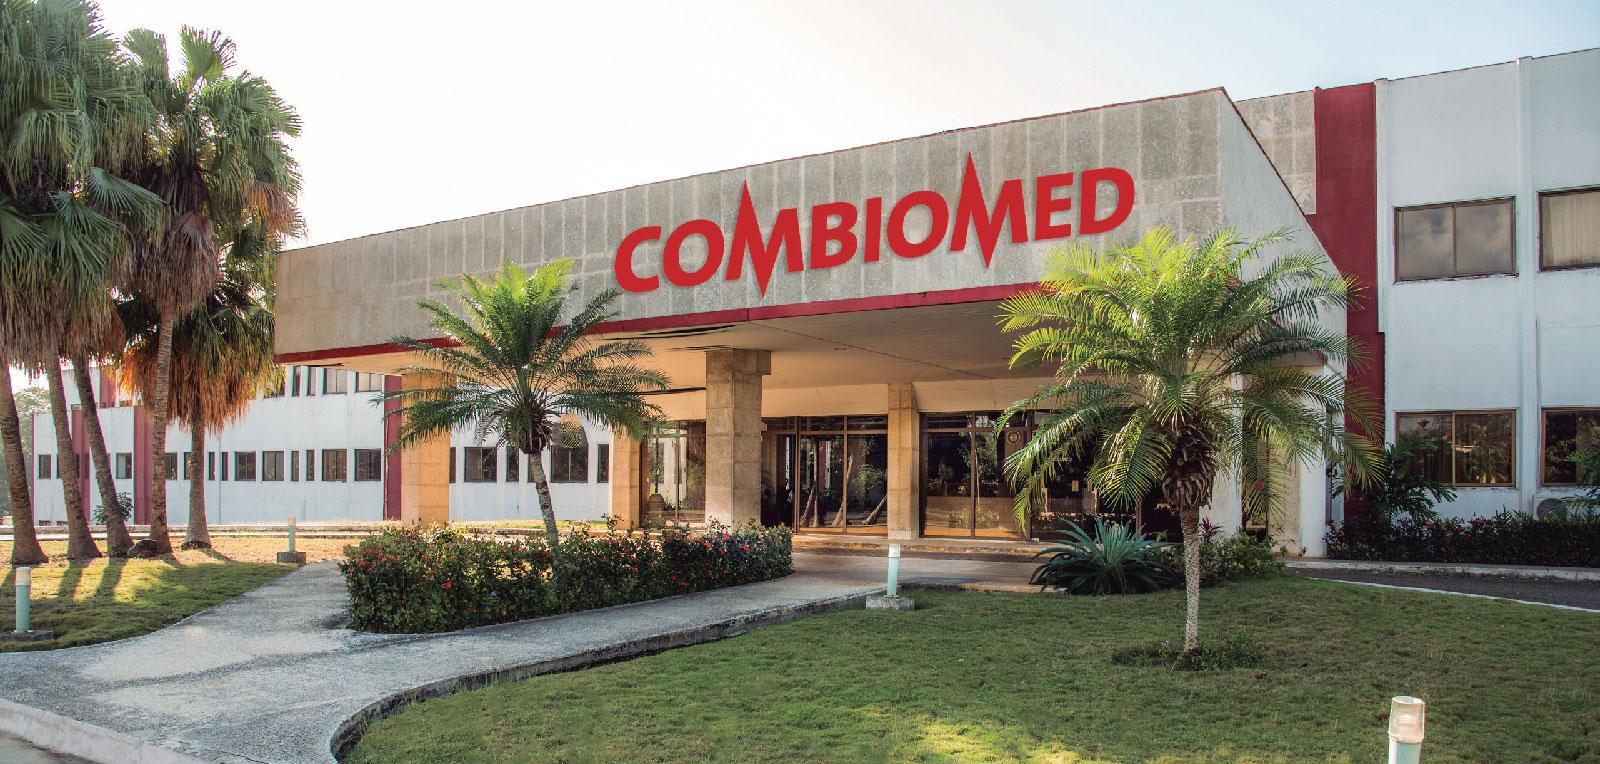 COMBIOMED. Technology at the service of health care